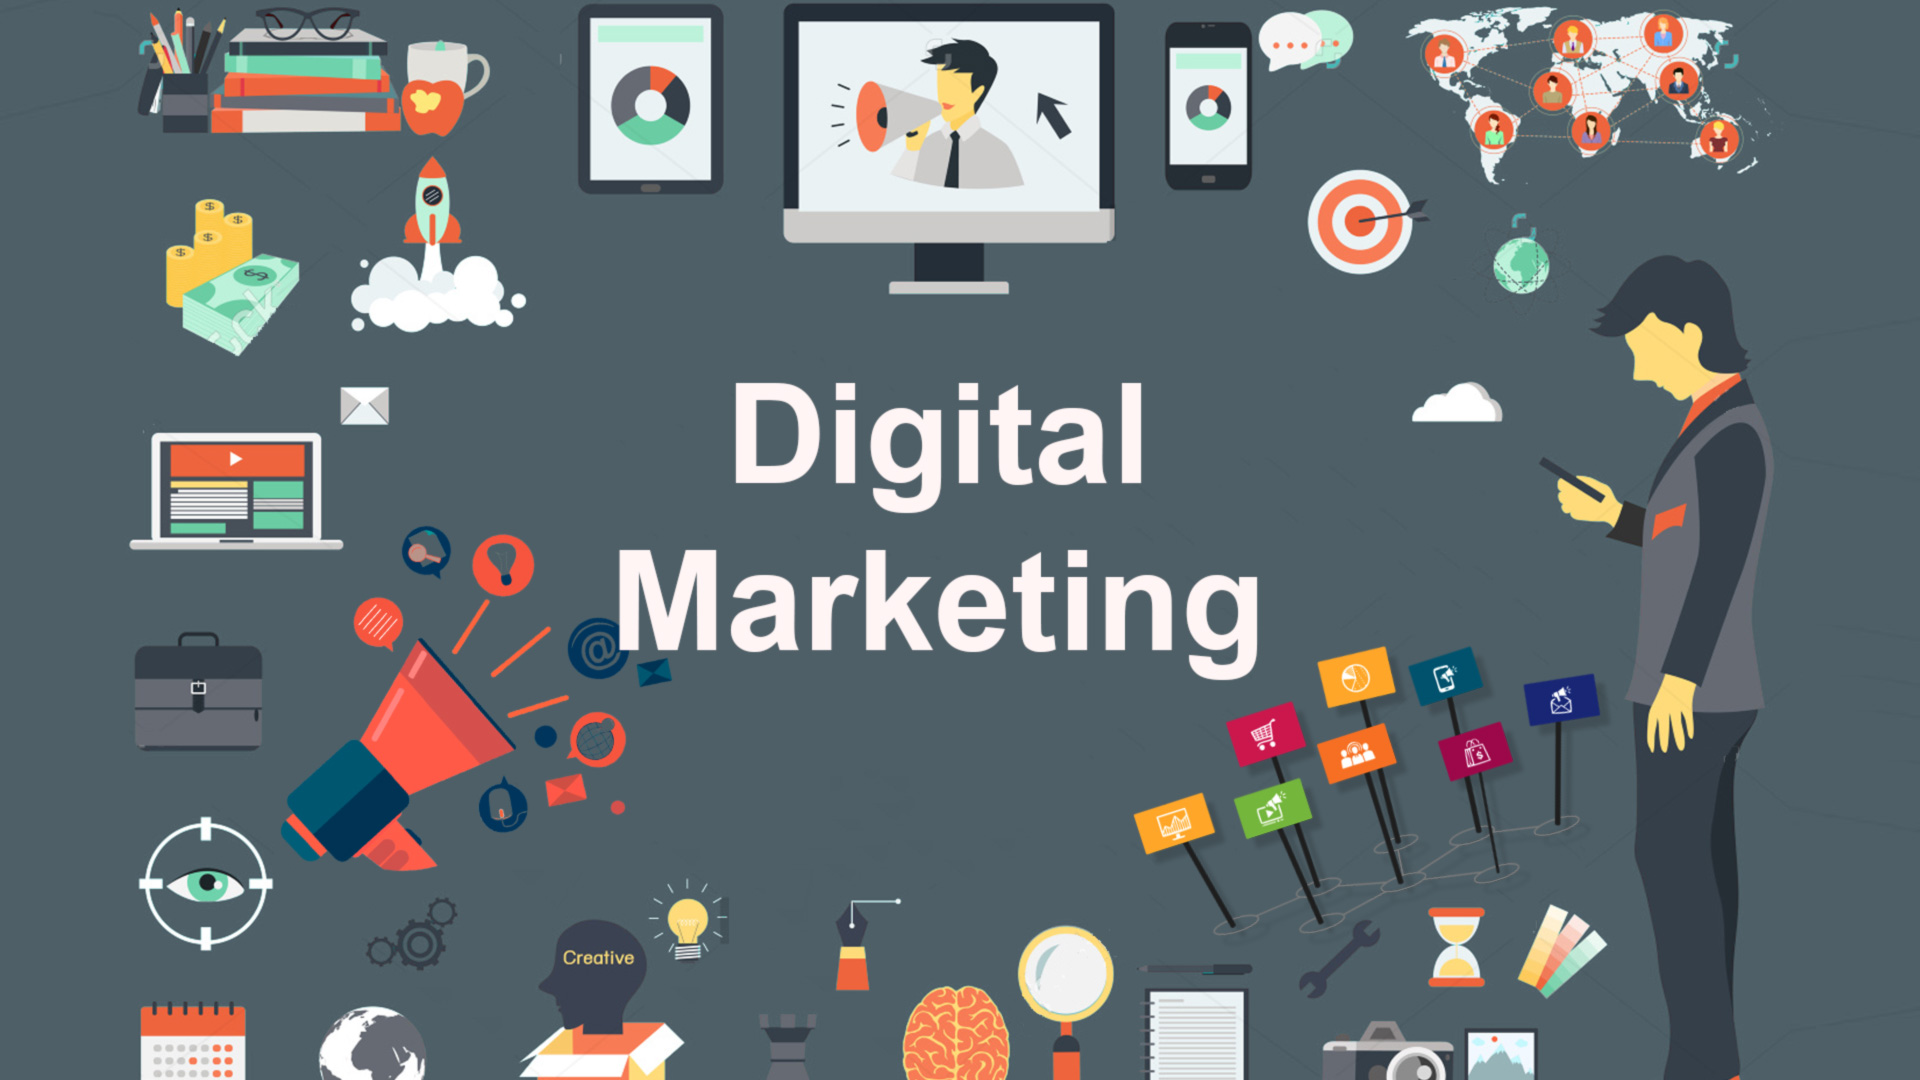 Top 5 Digital Marketing Trends in 2018